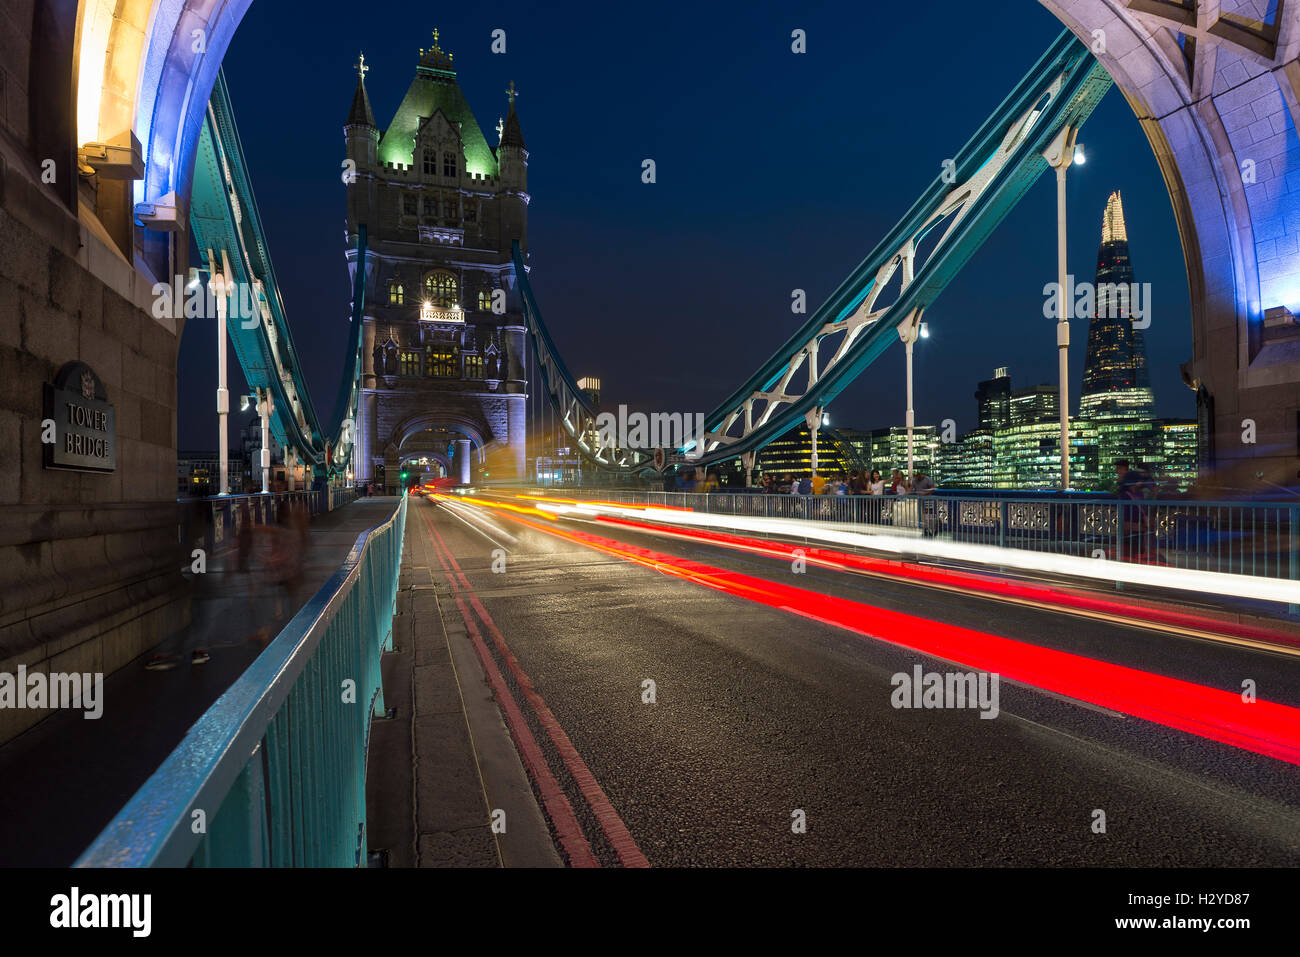 Skyline of Southwark with the Shard and gleam of traffic on the Tower Bridge over the river Thames at night, London, - Stock Image